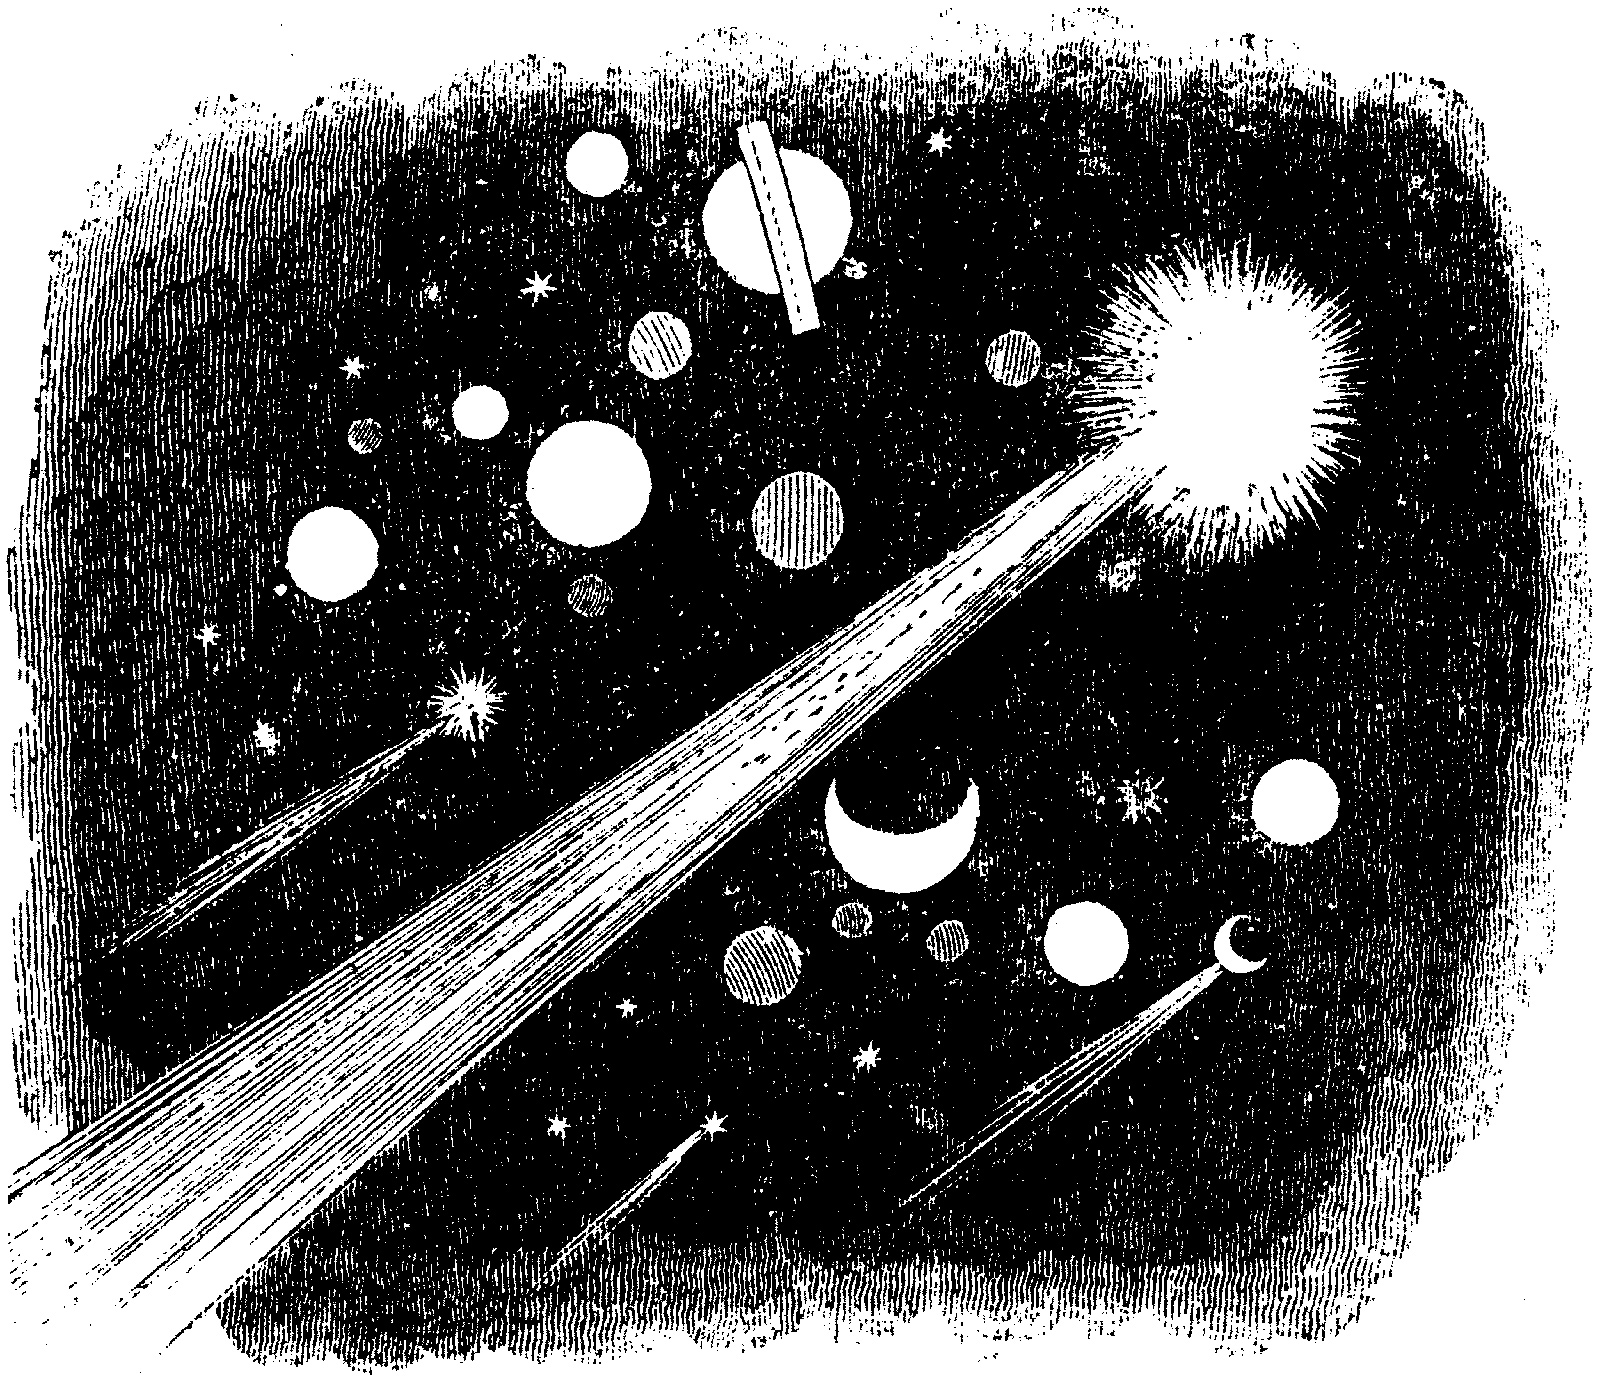 'The Planets'; nineteenth-century engraving by J.J. Grandville